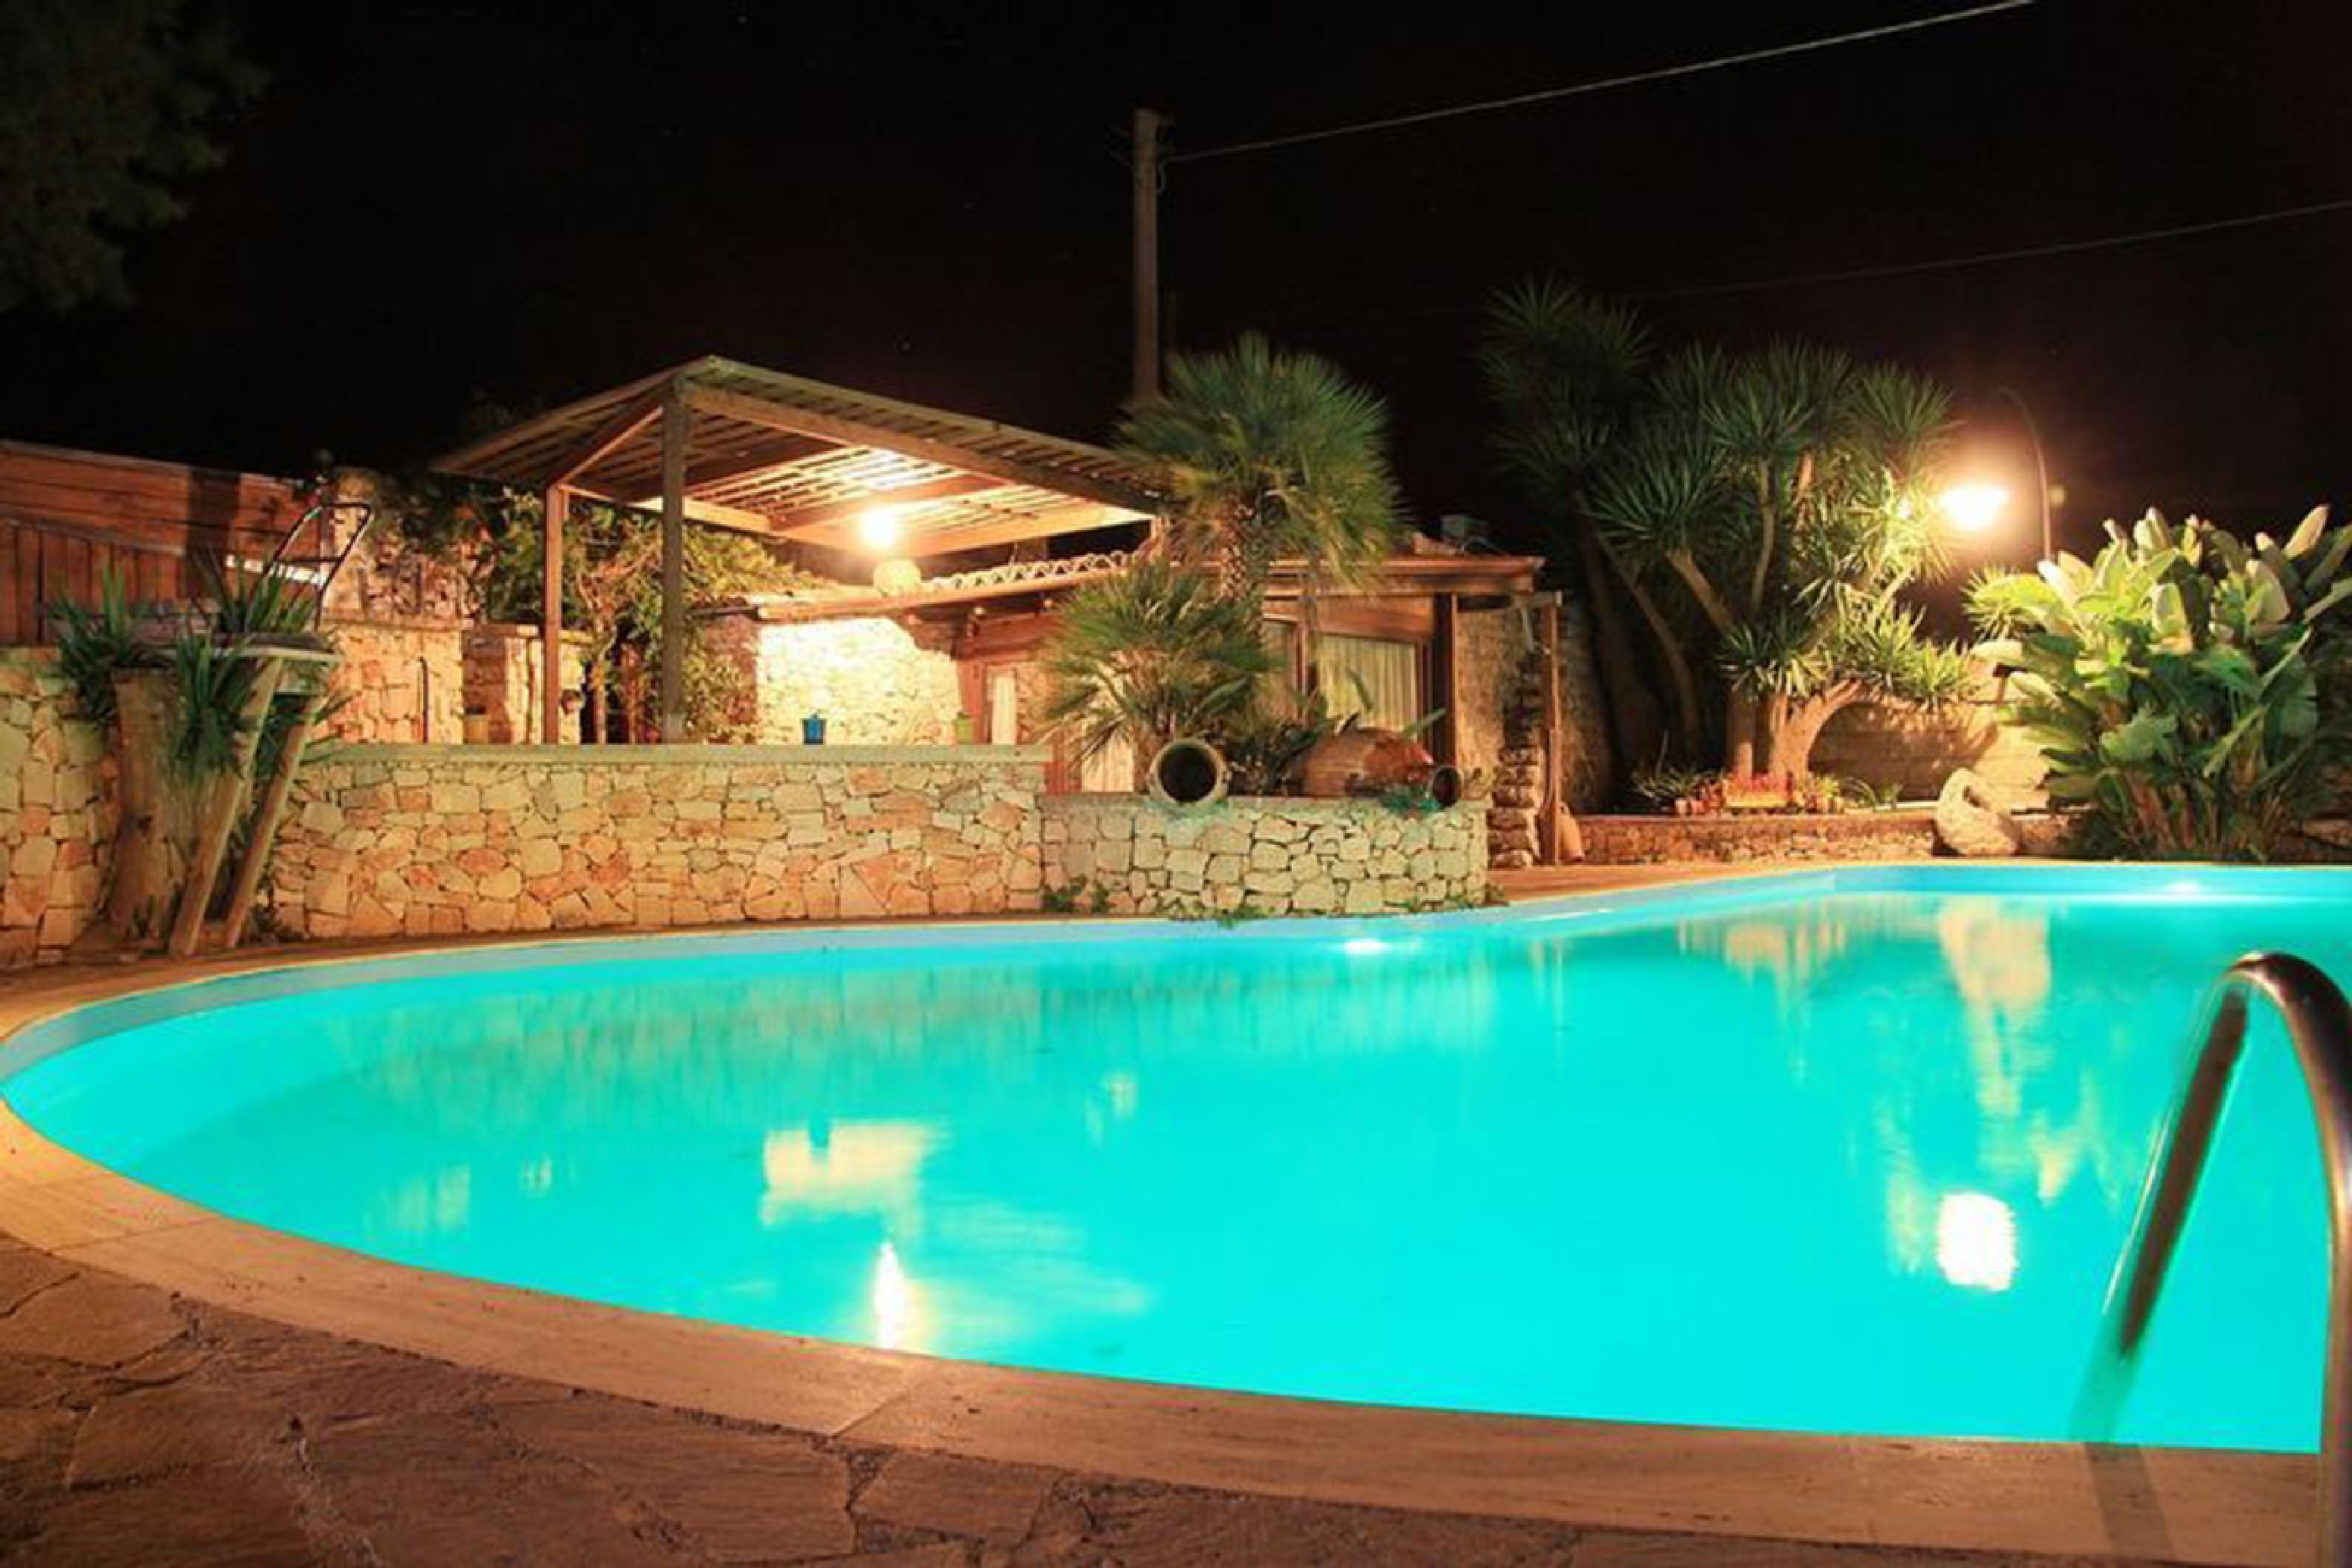 Trilo Noce shared pool photo 20369968